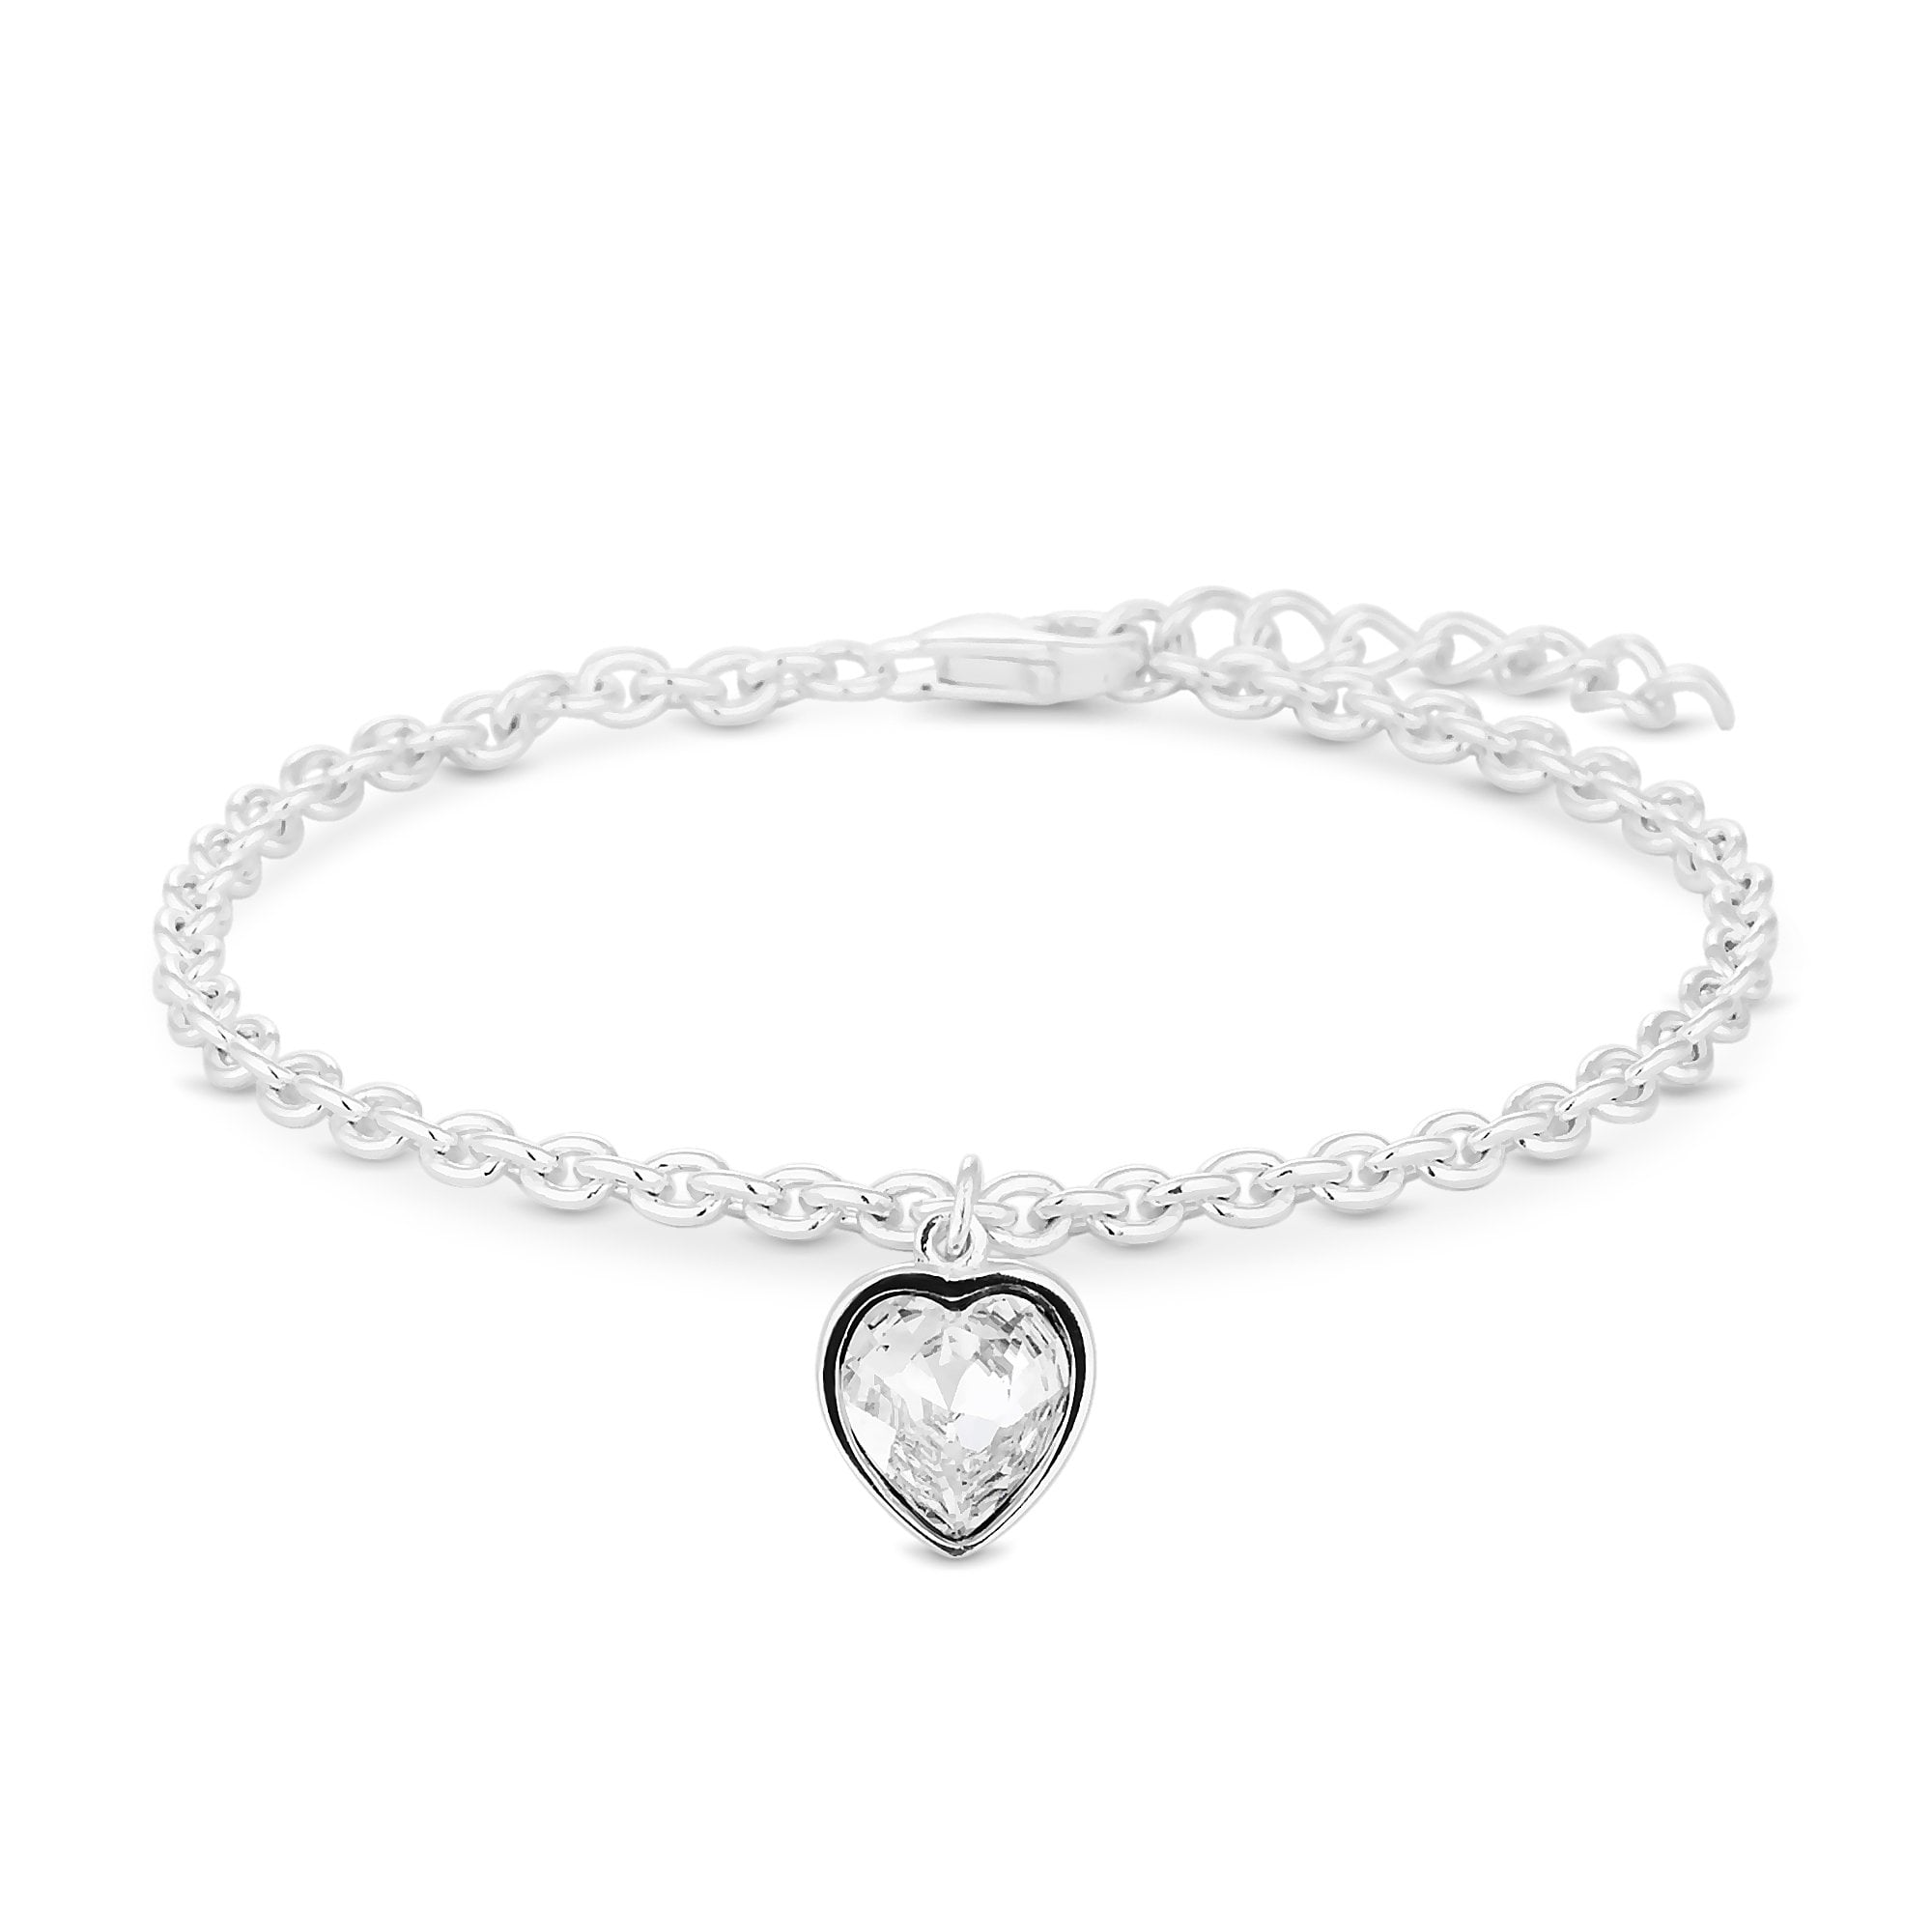 ff623e289d15 Simply Silver Sterling Silver 925 White Heart Bracelet Embellished With  Swarovski® Crystals